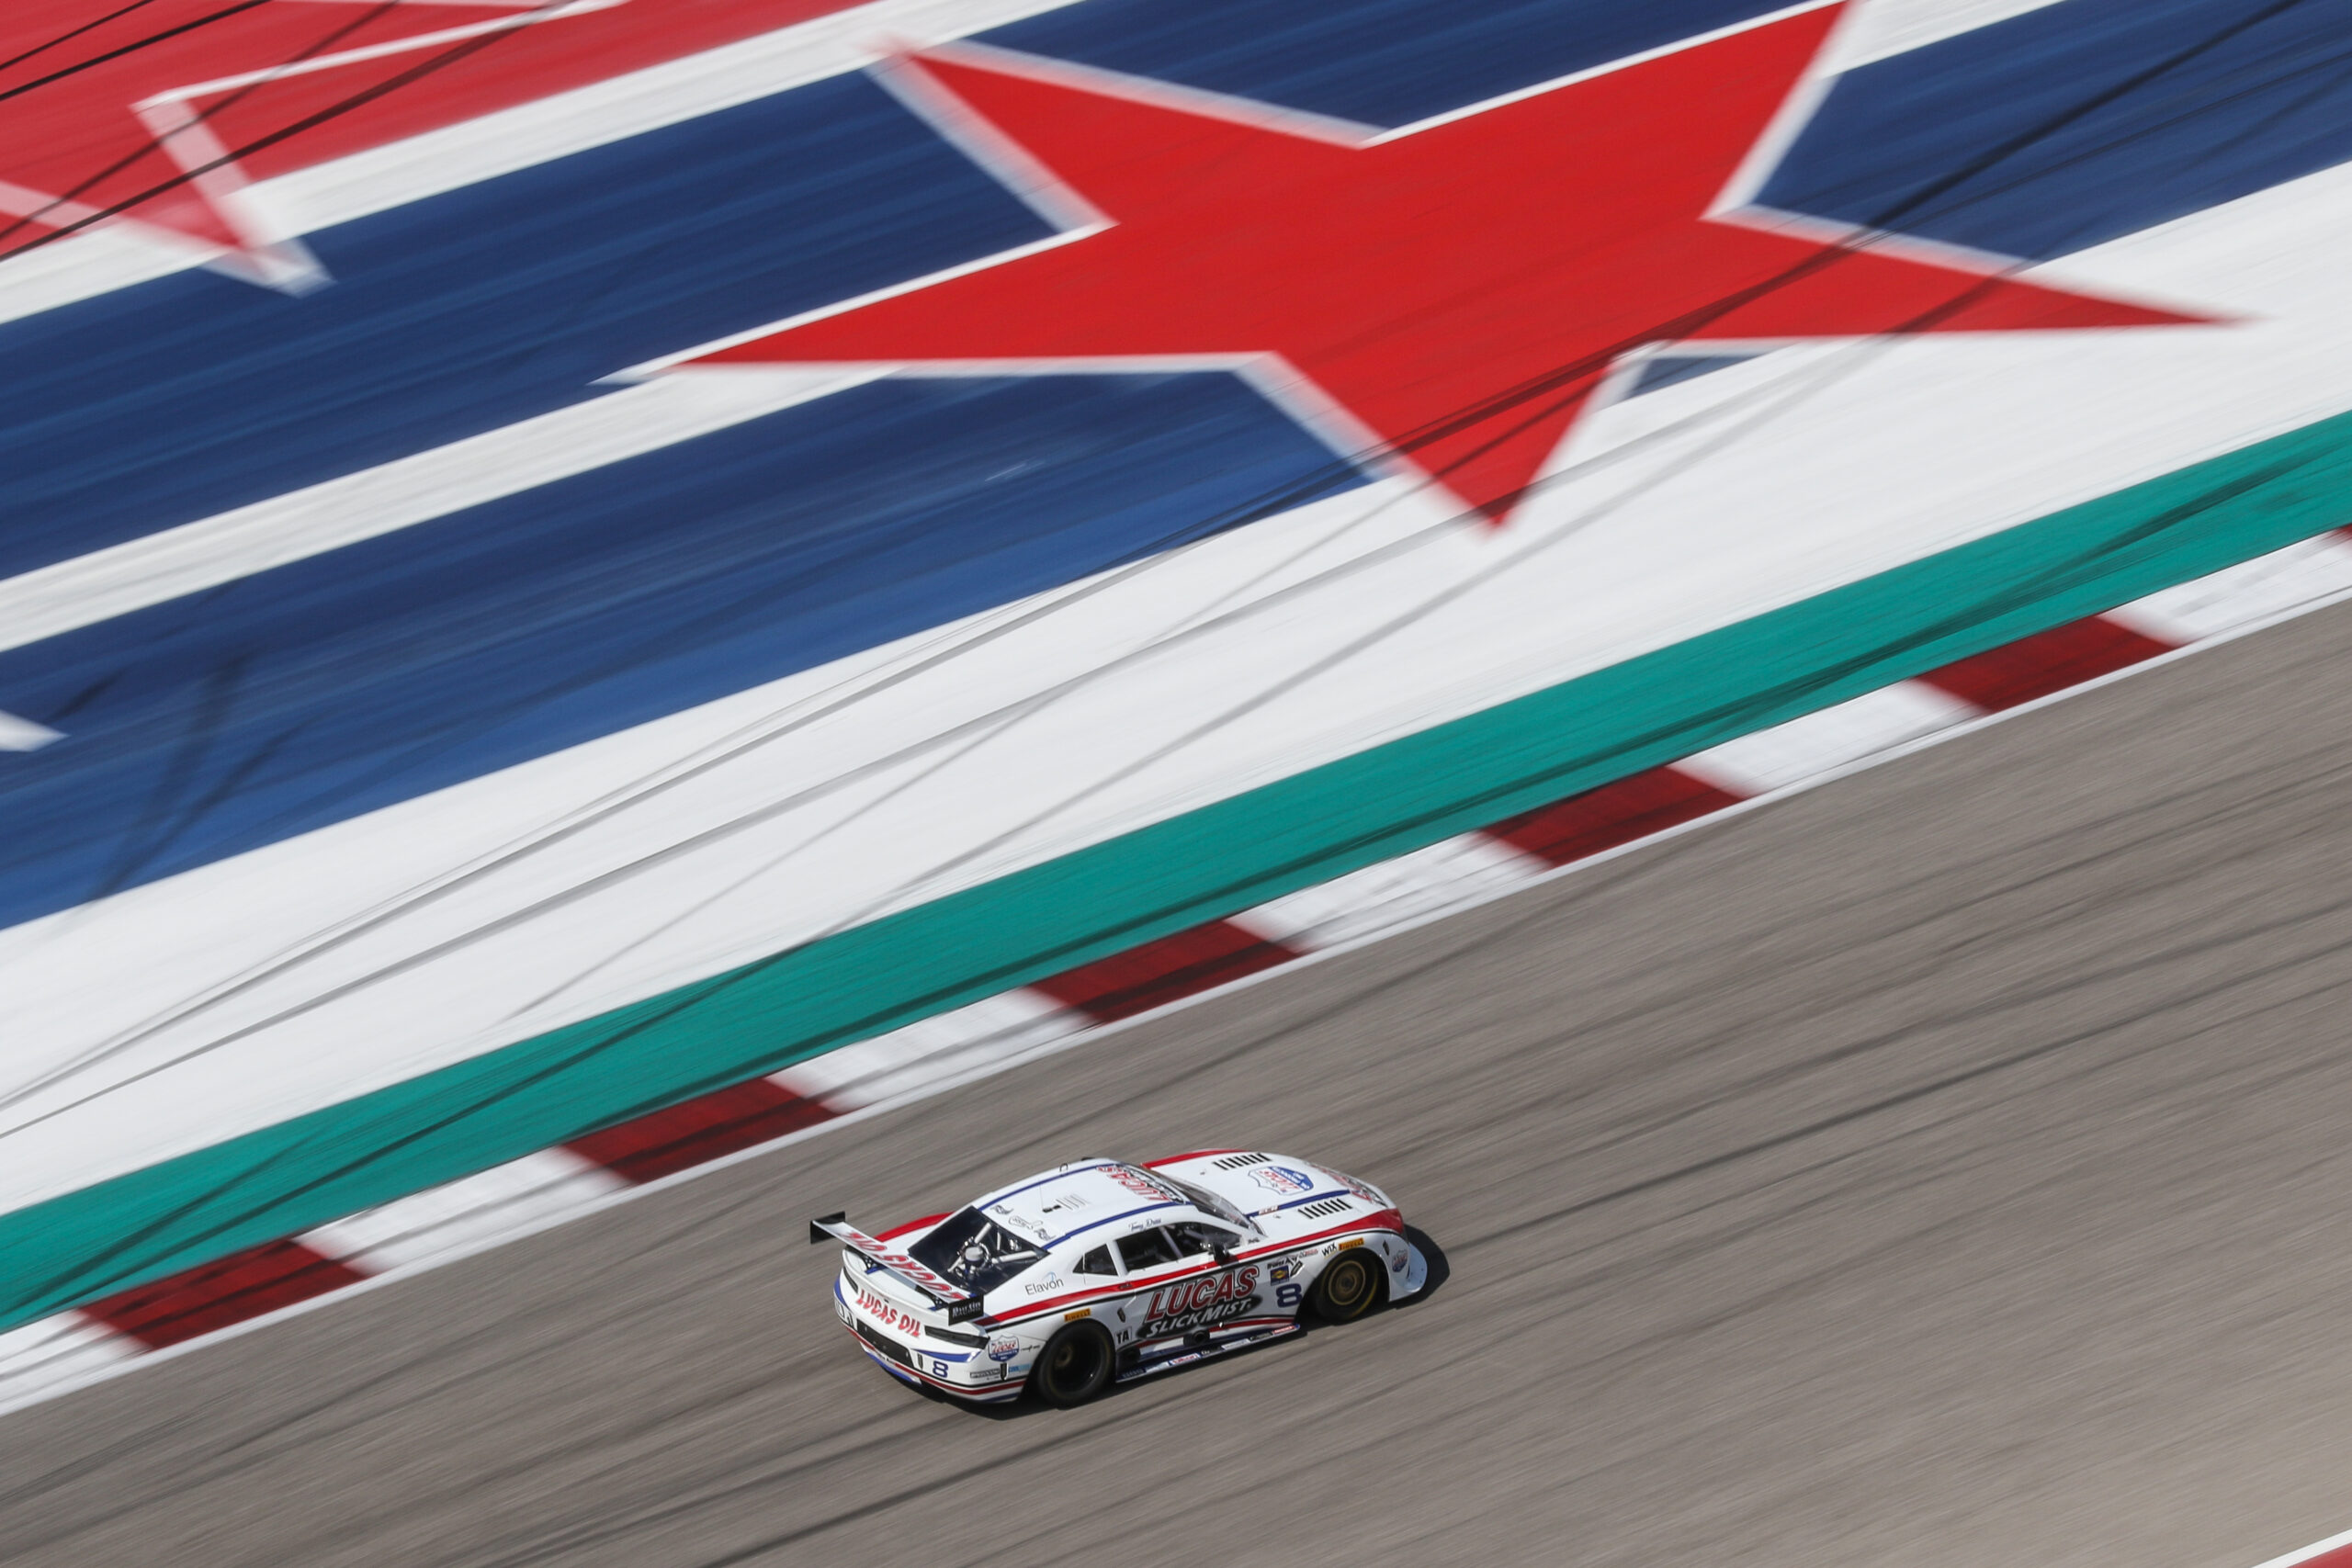 Lucas SlickMist Driver Tomy Drissi Saddled Up for Some Texas Speed at Circuit of Americas